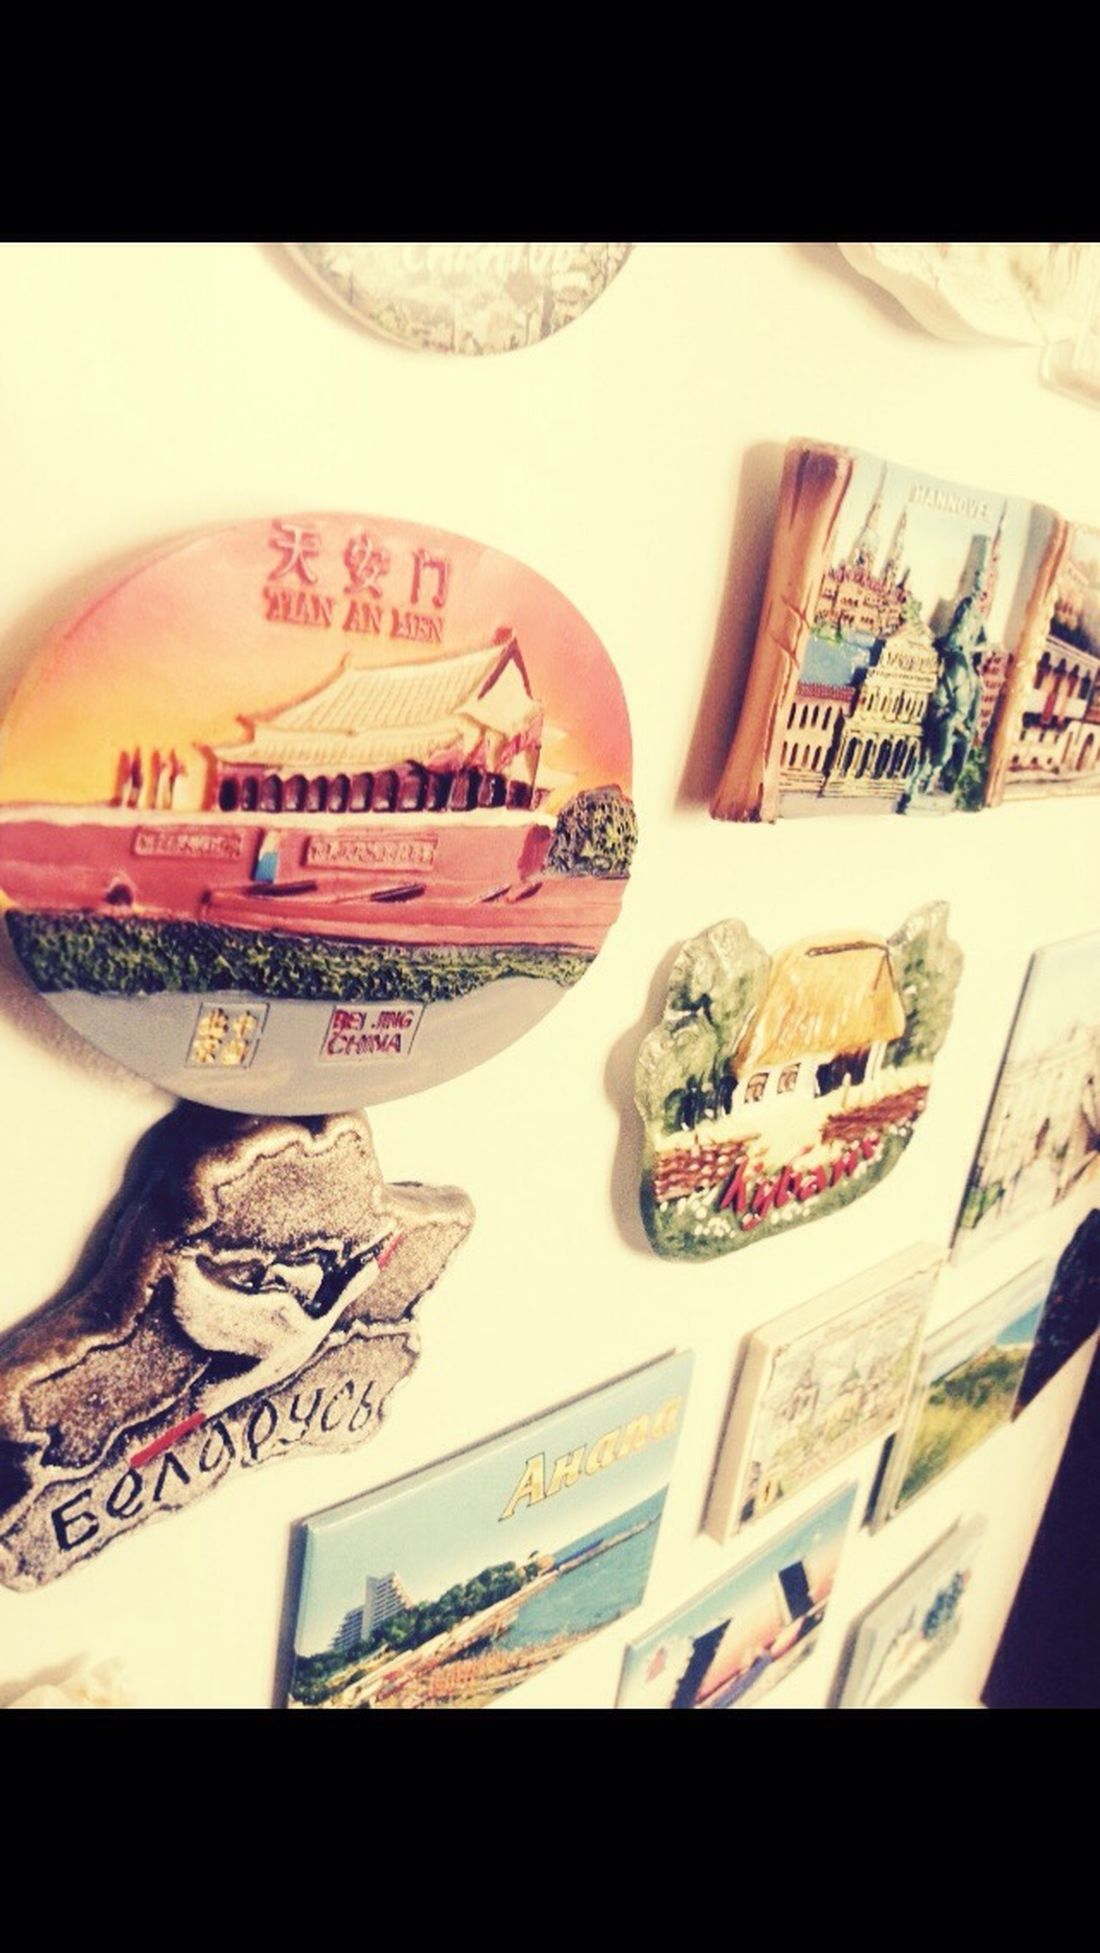 First Eyeem Photo Countries Towns Trip Magnet Magnets Countries Of The World Town Town Wall Townphotography Trip Photo Trips Trip Photos Magnetic Magnetism Magnet Souvenir